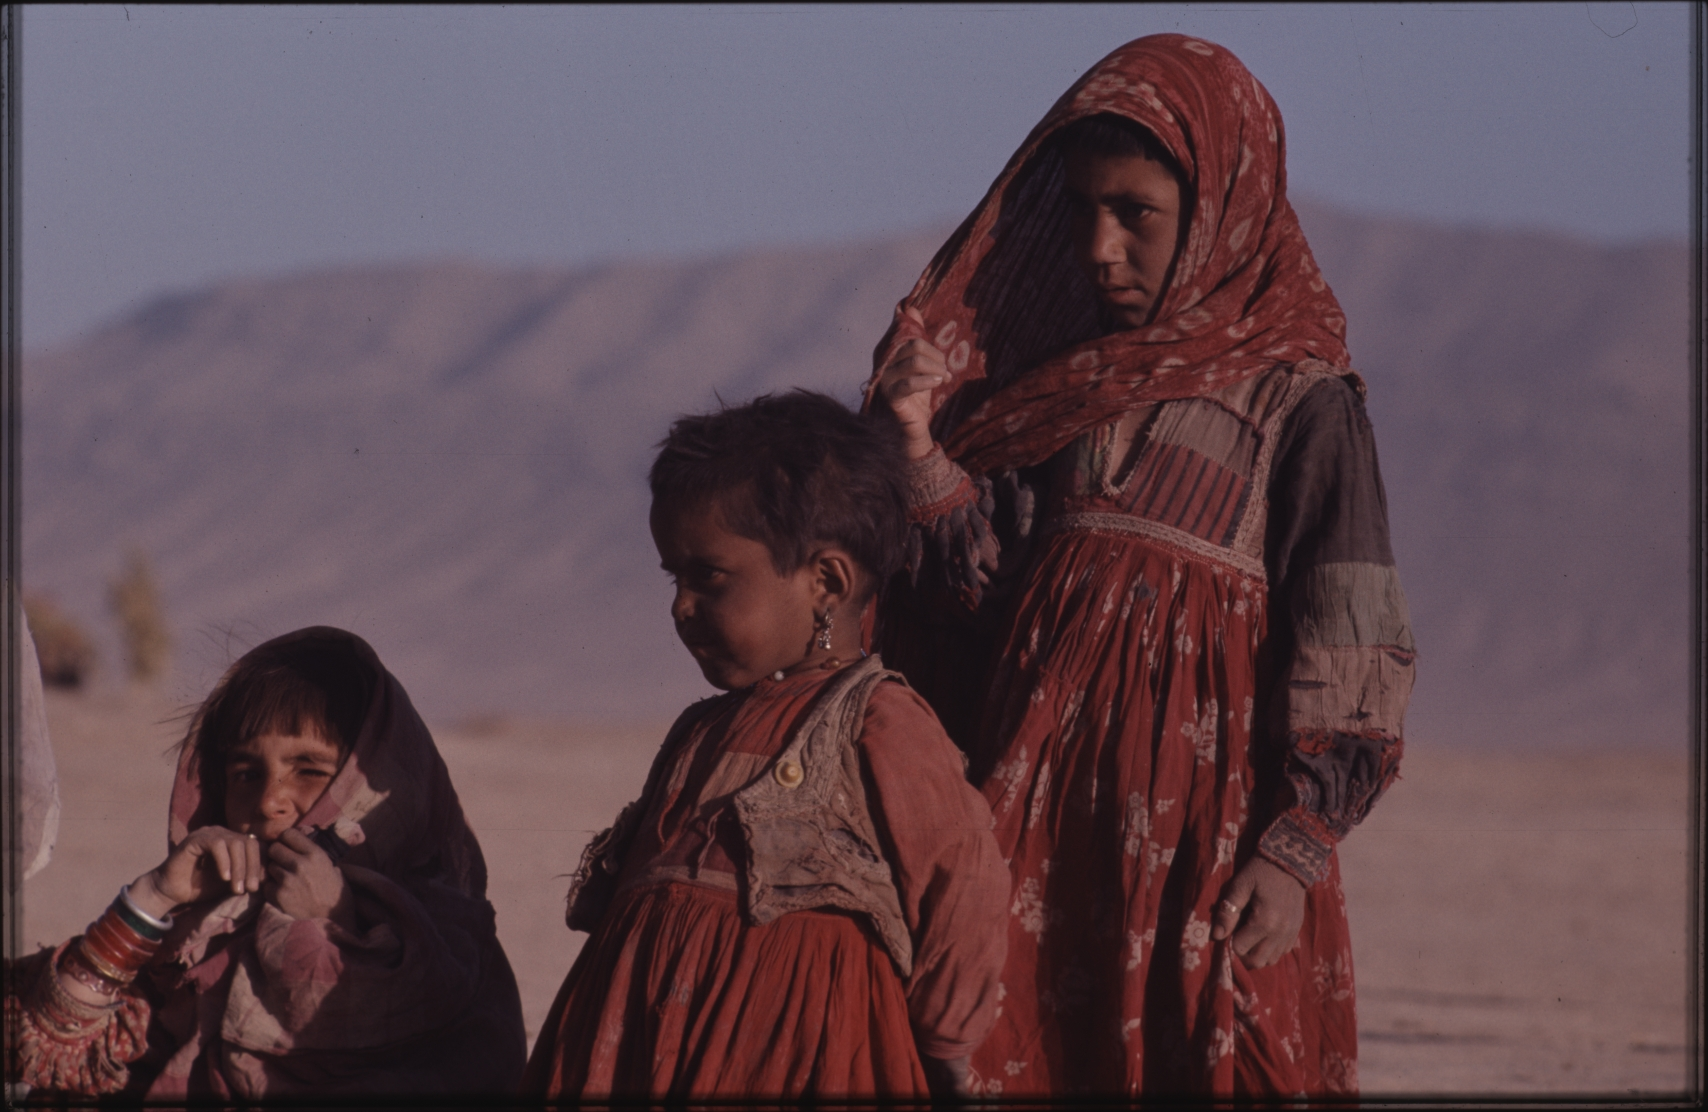 The nomad children take good care of their younger siblings. As a rule, they do not attend school. Photo: Jean Bourgeois, 1971